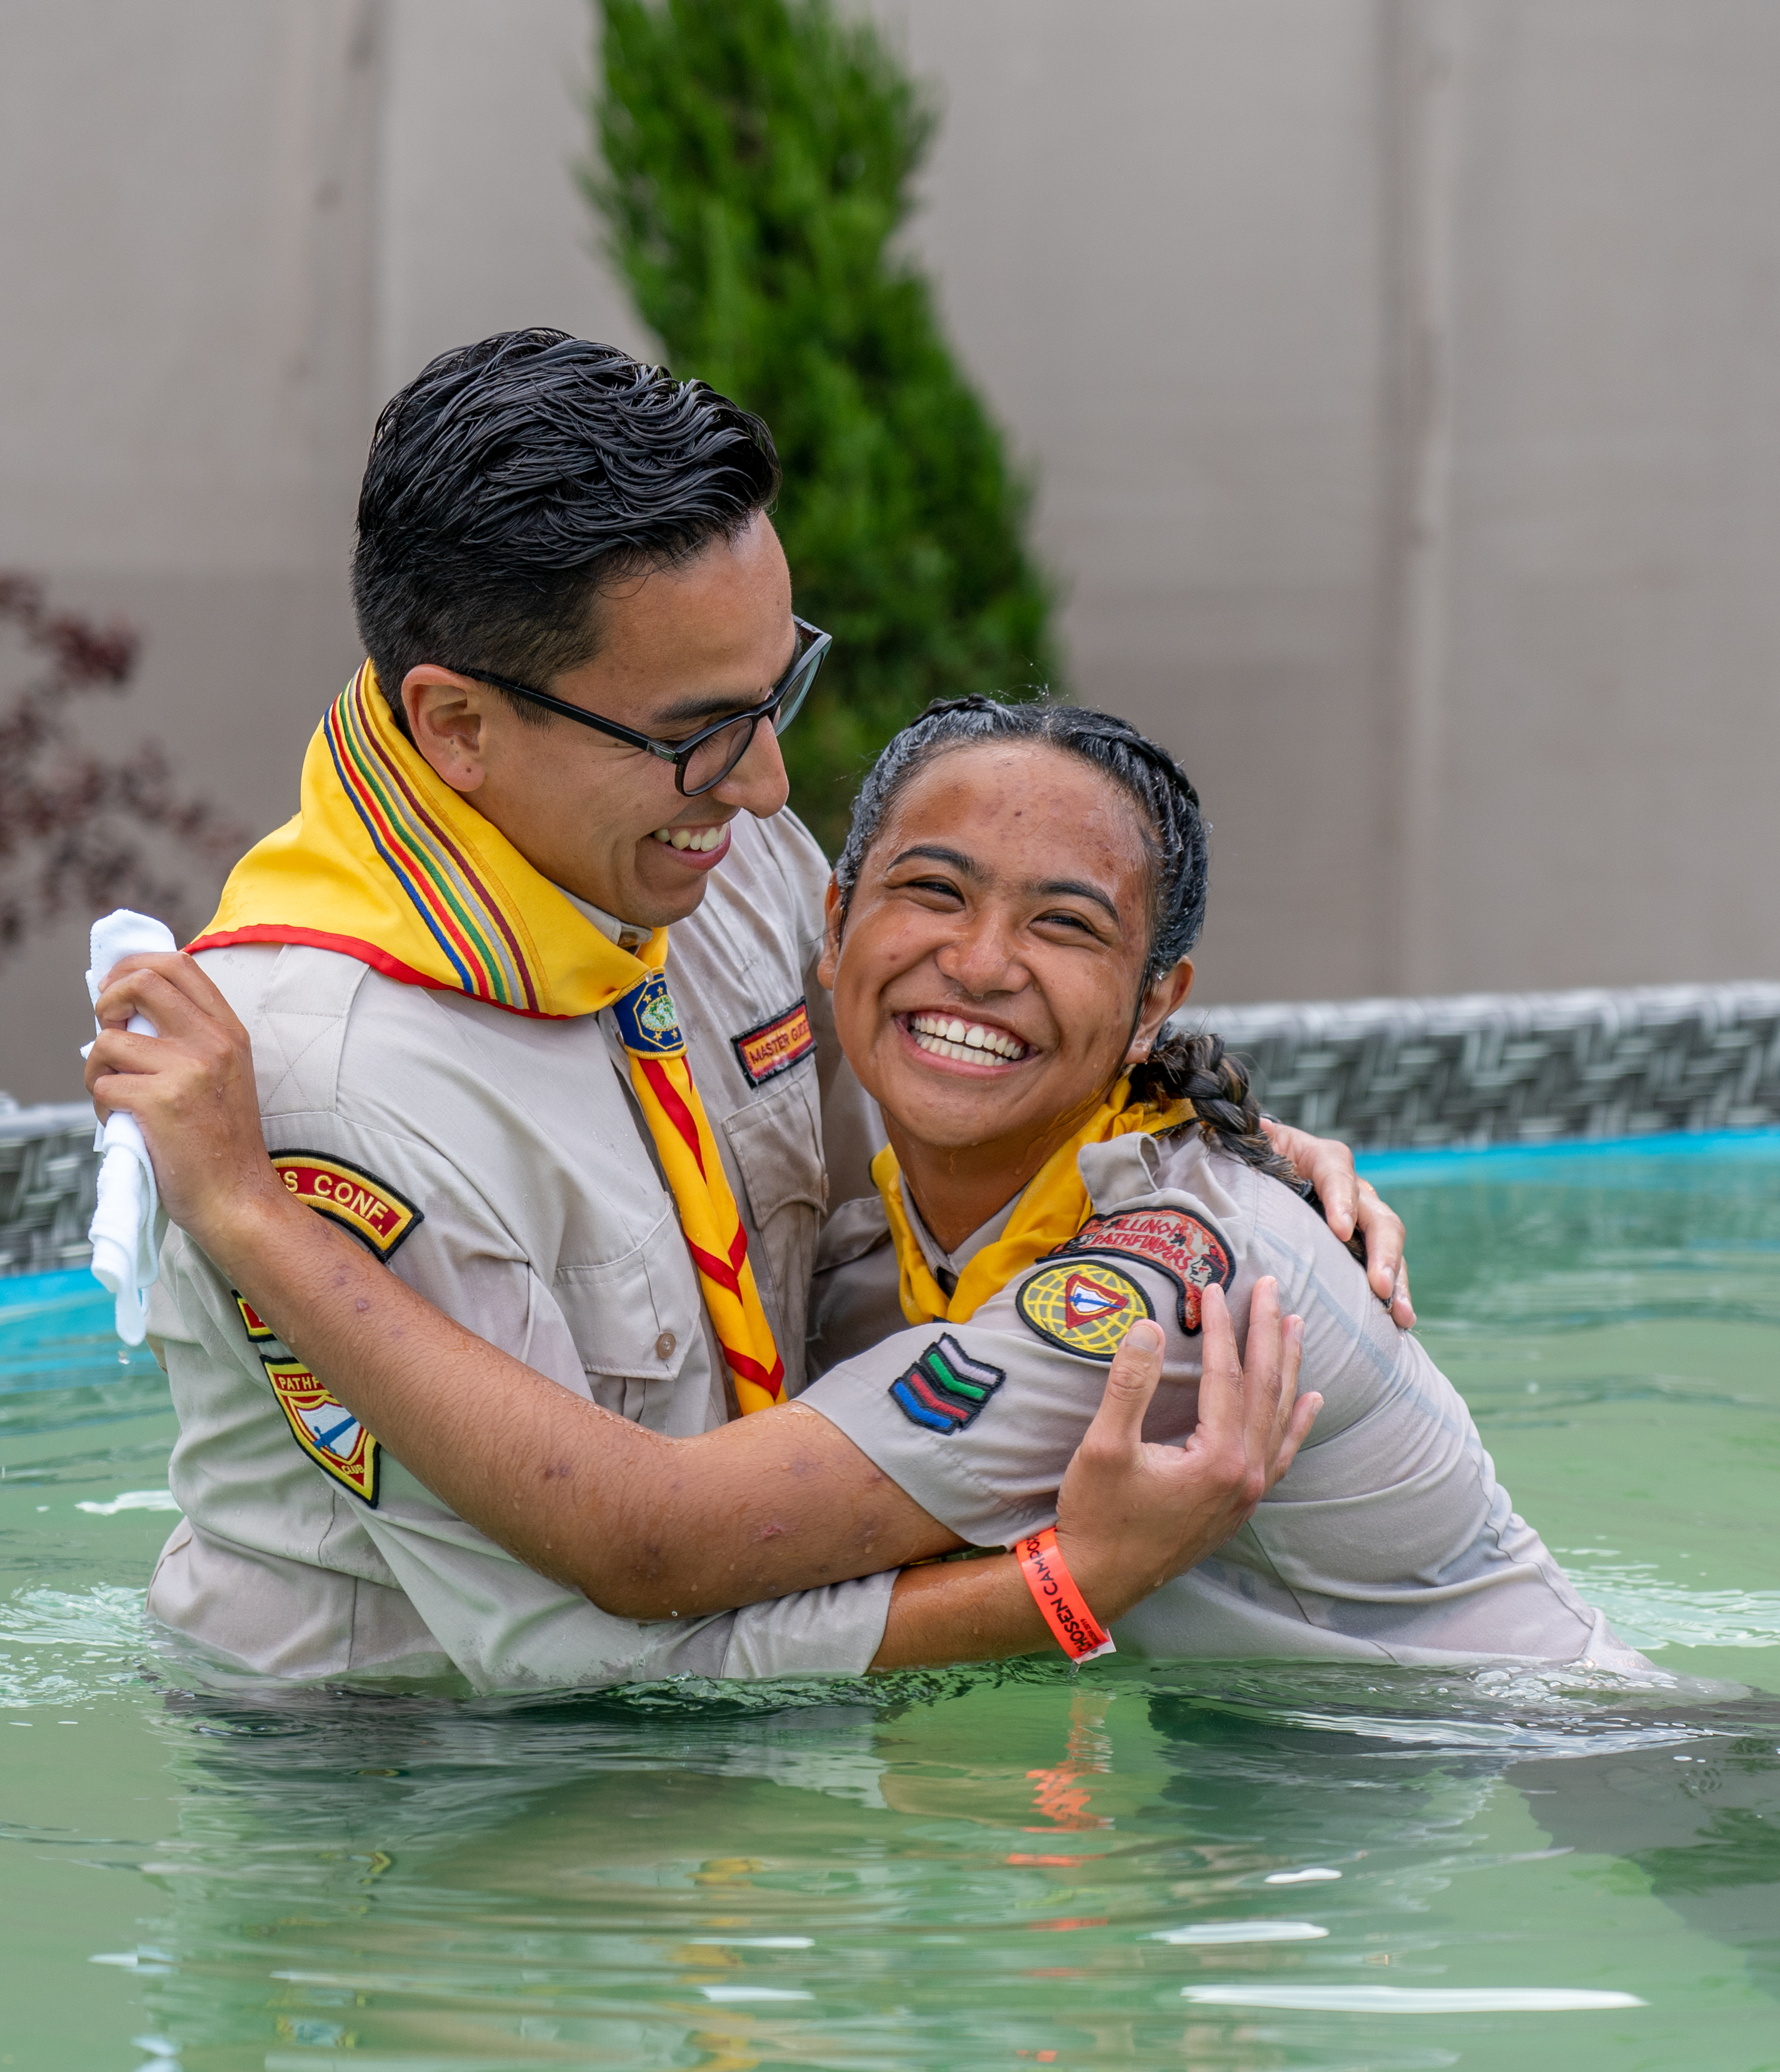 Pastor Michael Campos baptizes Kryslyn Maldonado, a Pathfinder from the Hinsdale Fil-Am Seventh-day Adventist Church (Ill.) during the 2019 Oshkosh camporee where a record-breaking total of 1,311 were baptized. Photo by Dan Weber